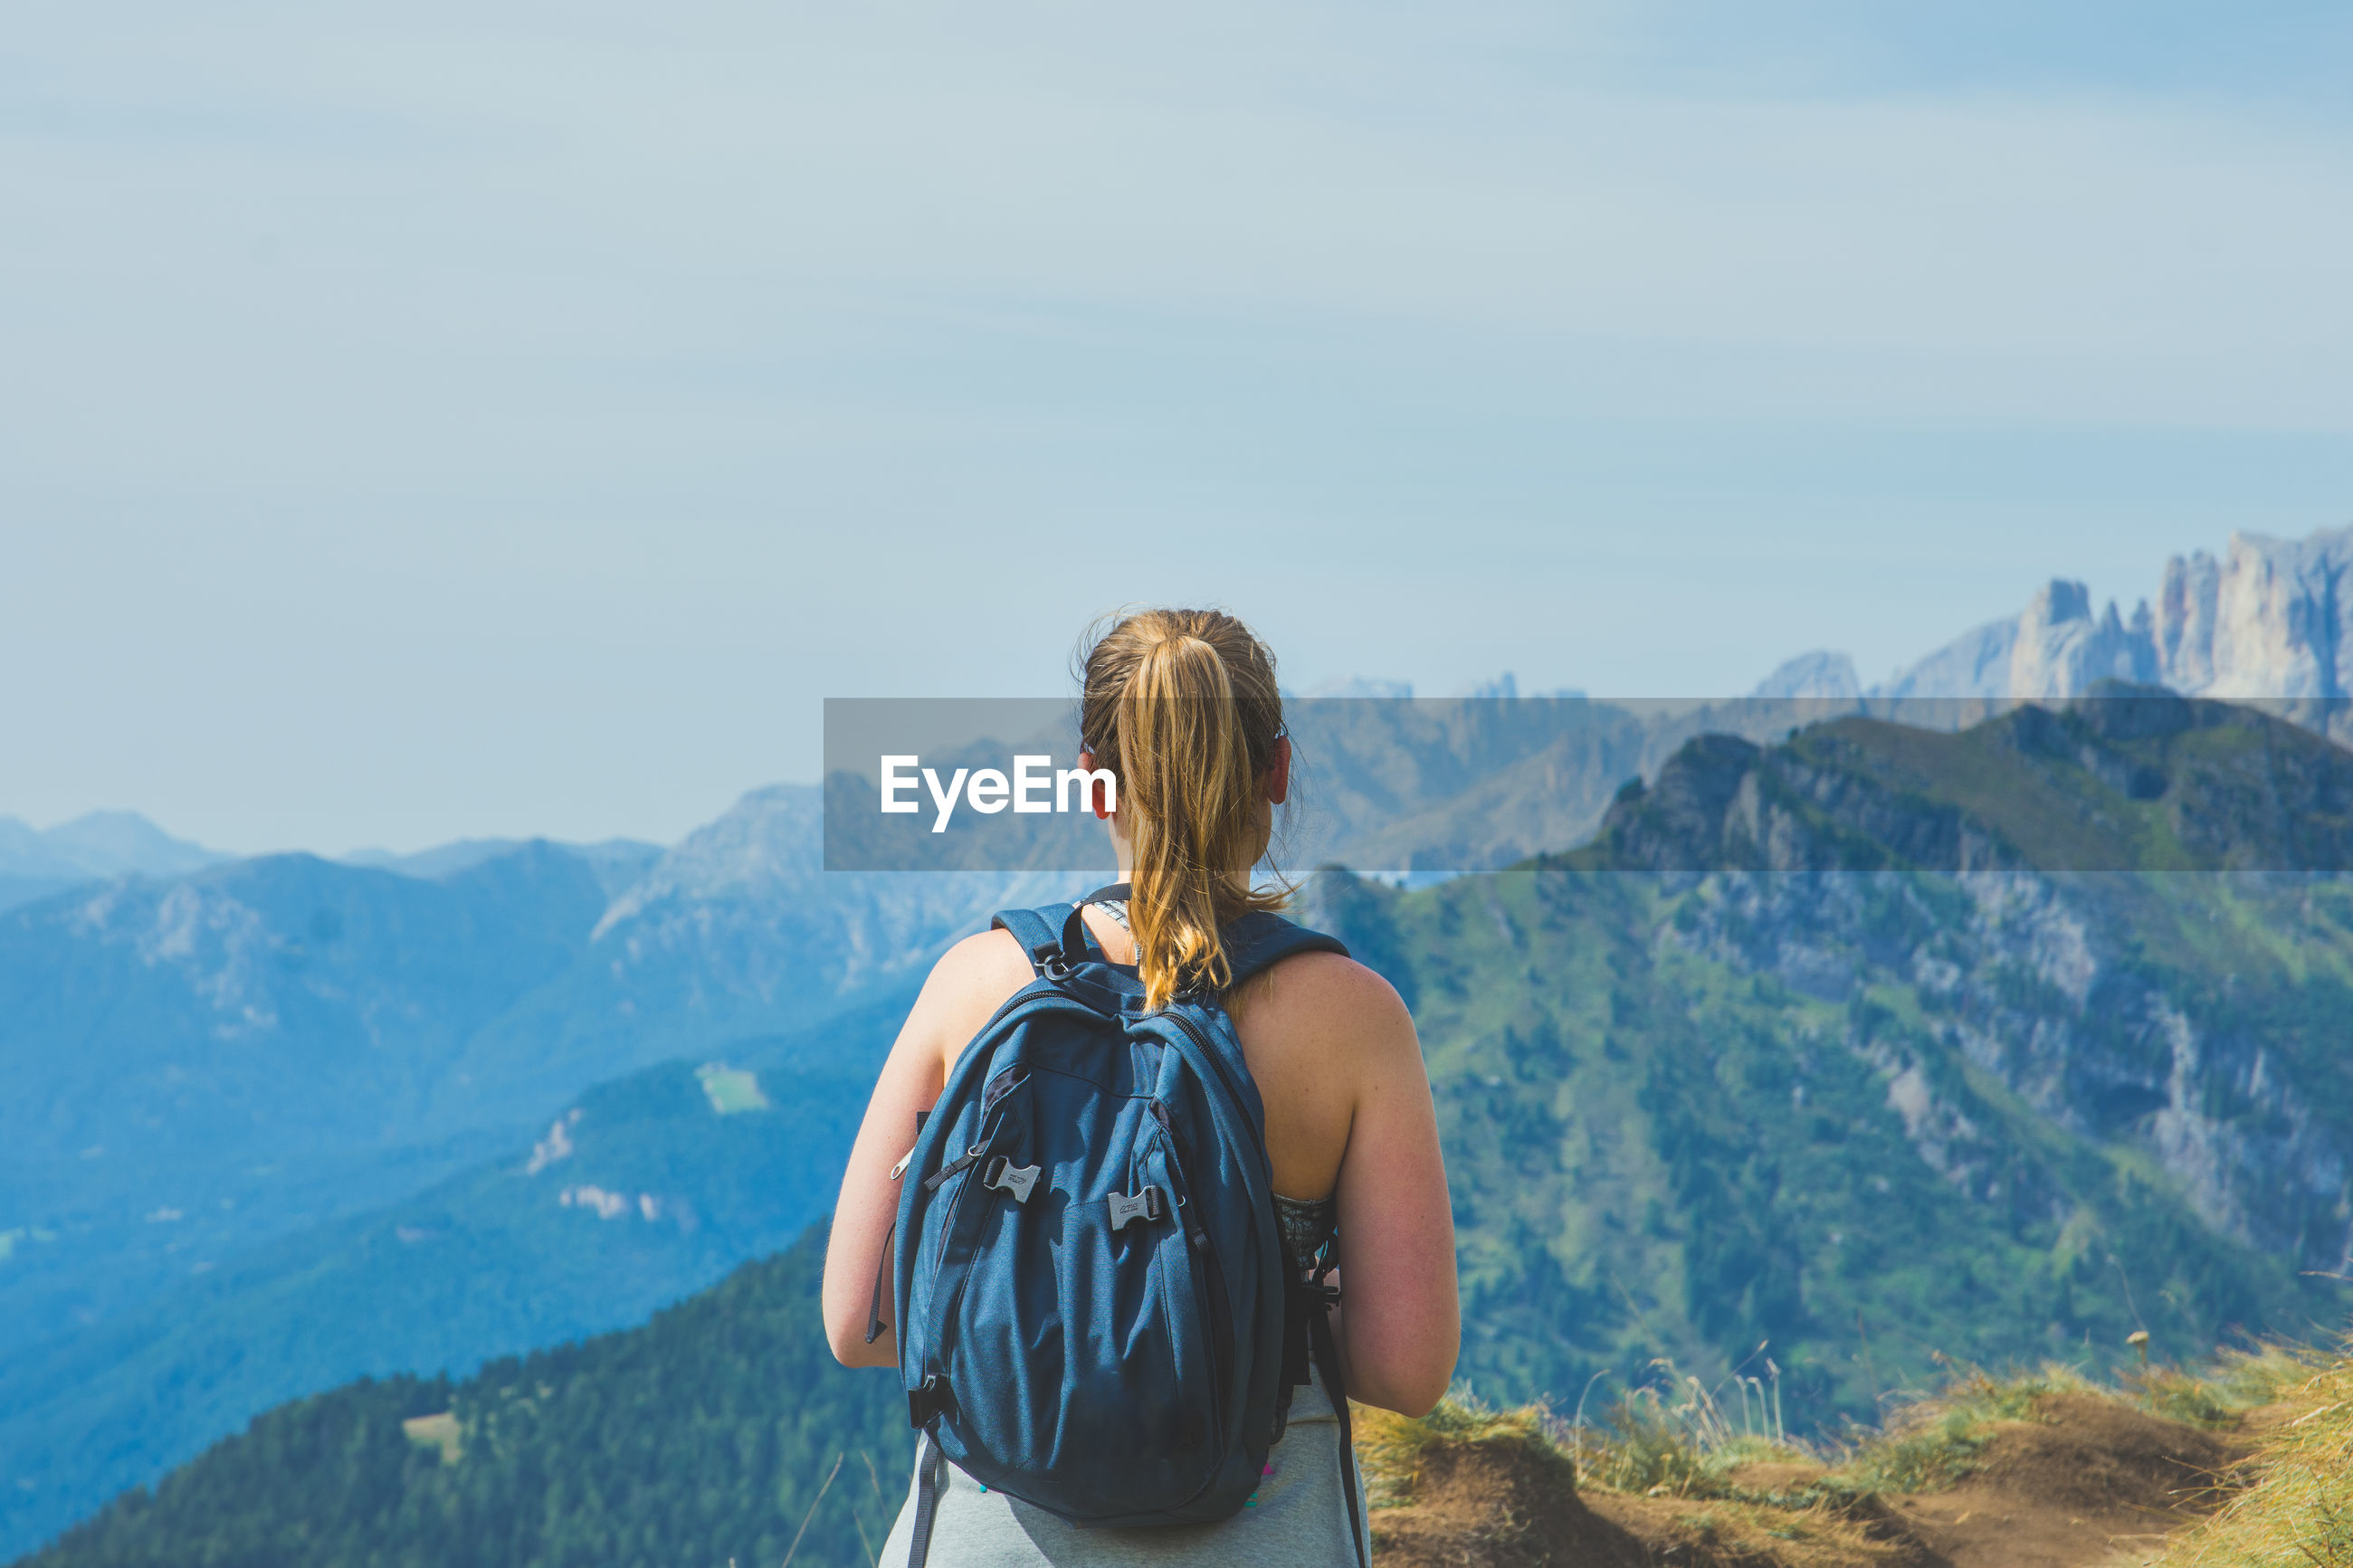 Rear view of backpacker standing on mountain against sky